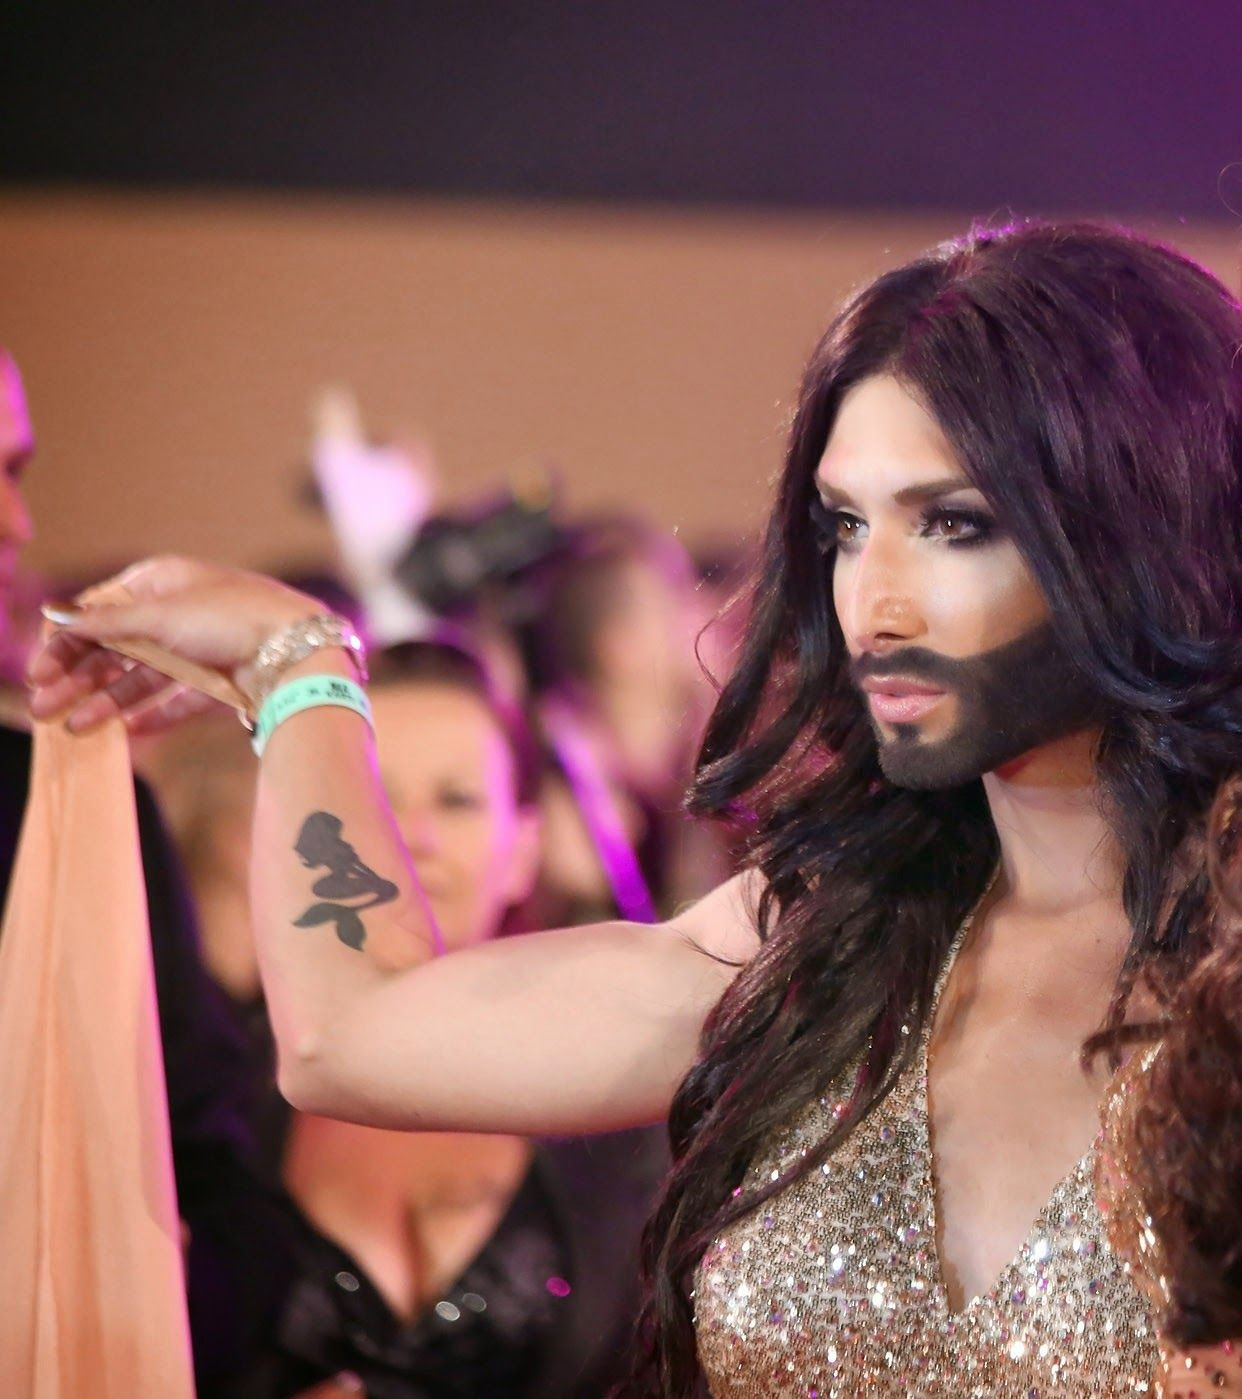 Conchita wurst and dana international in eurovision first star -  Eurovision 2014 Austria Conchita Wurst Aka Tom Neuwirth